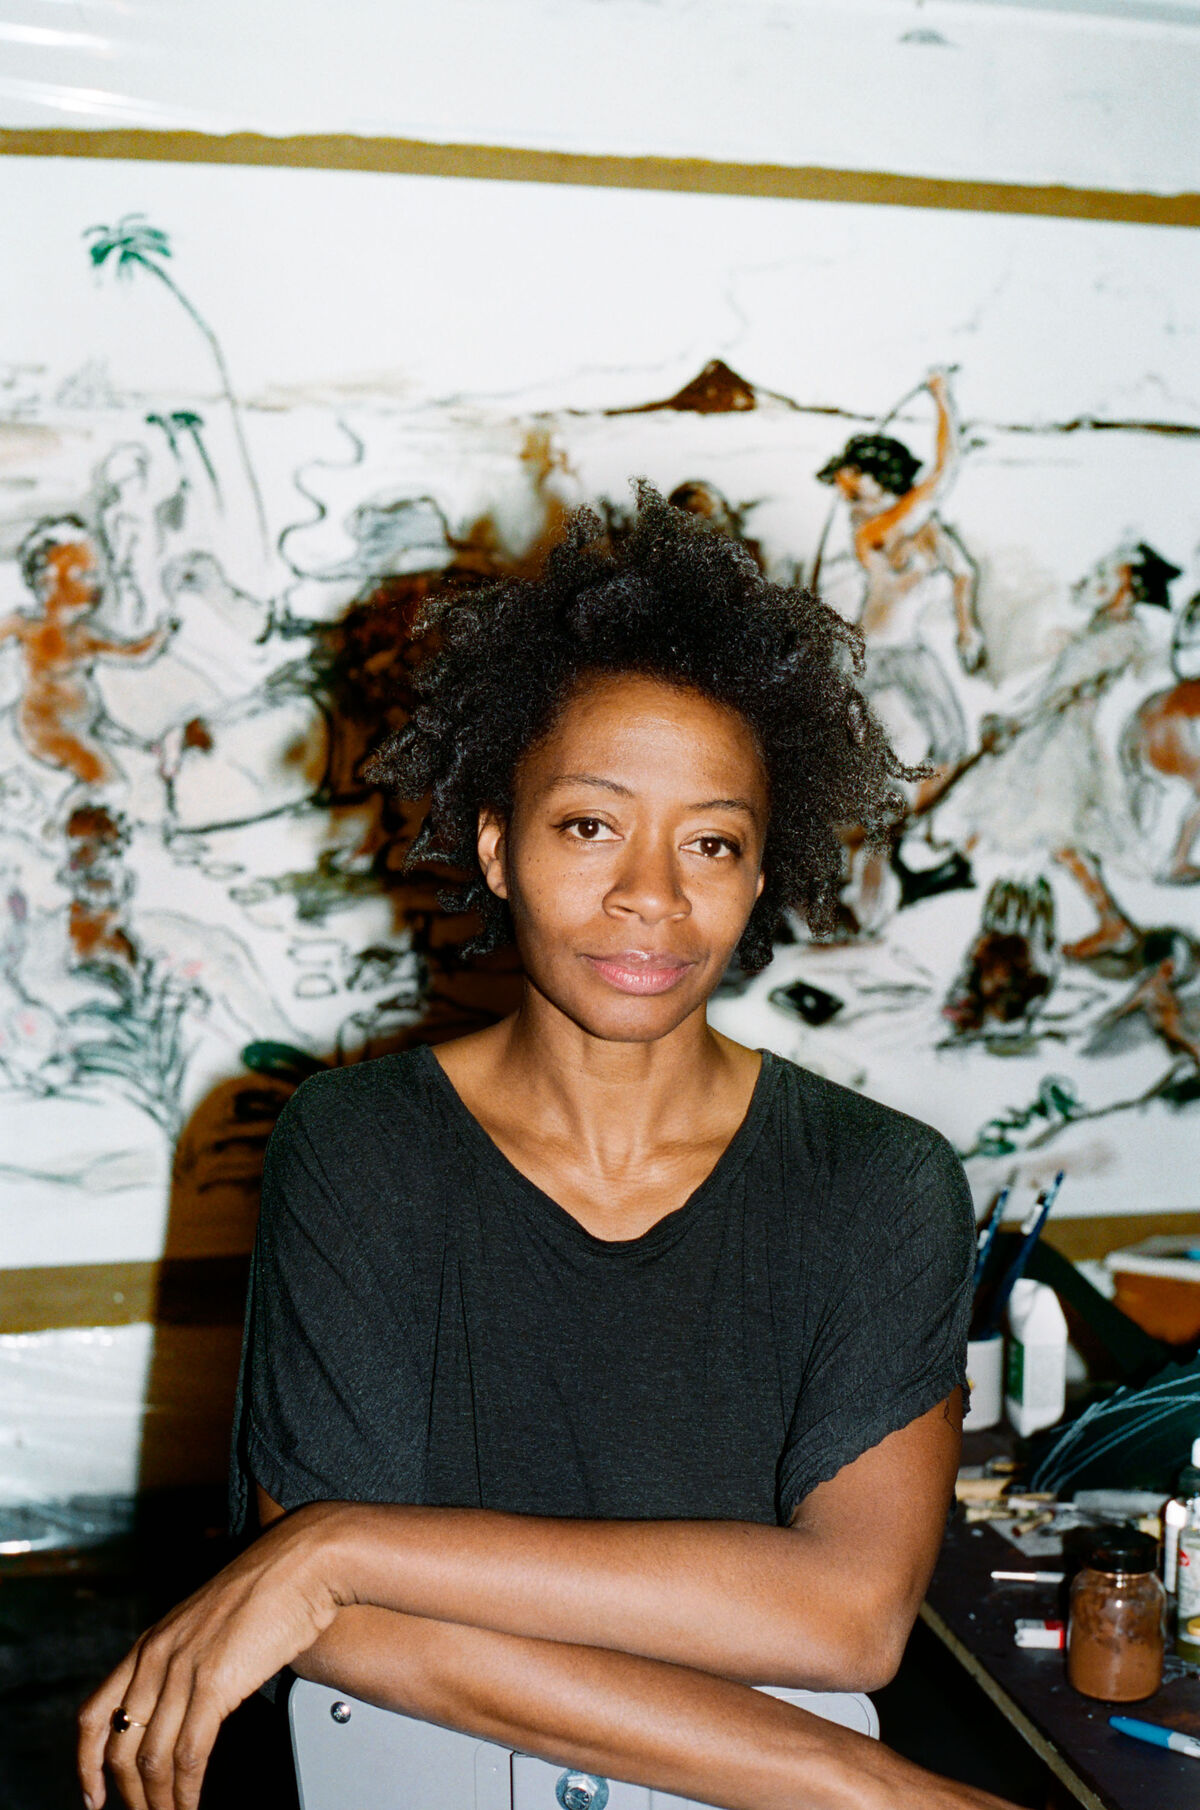 Portrait of Kara Walker. Photo by Ari Marcopoulos. Courtesy of Sikkema Jenkins & Co., New York.